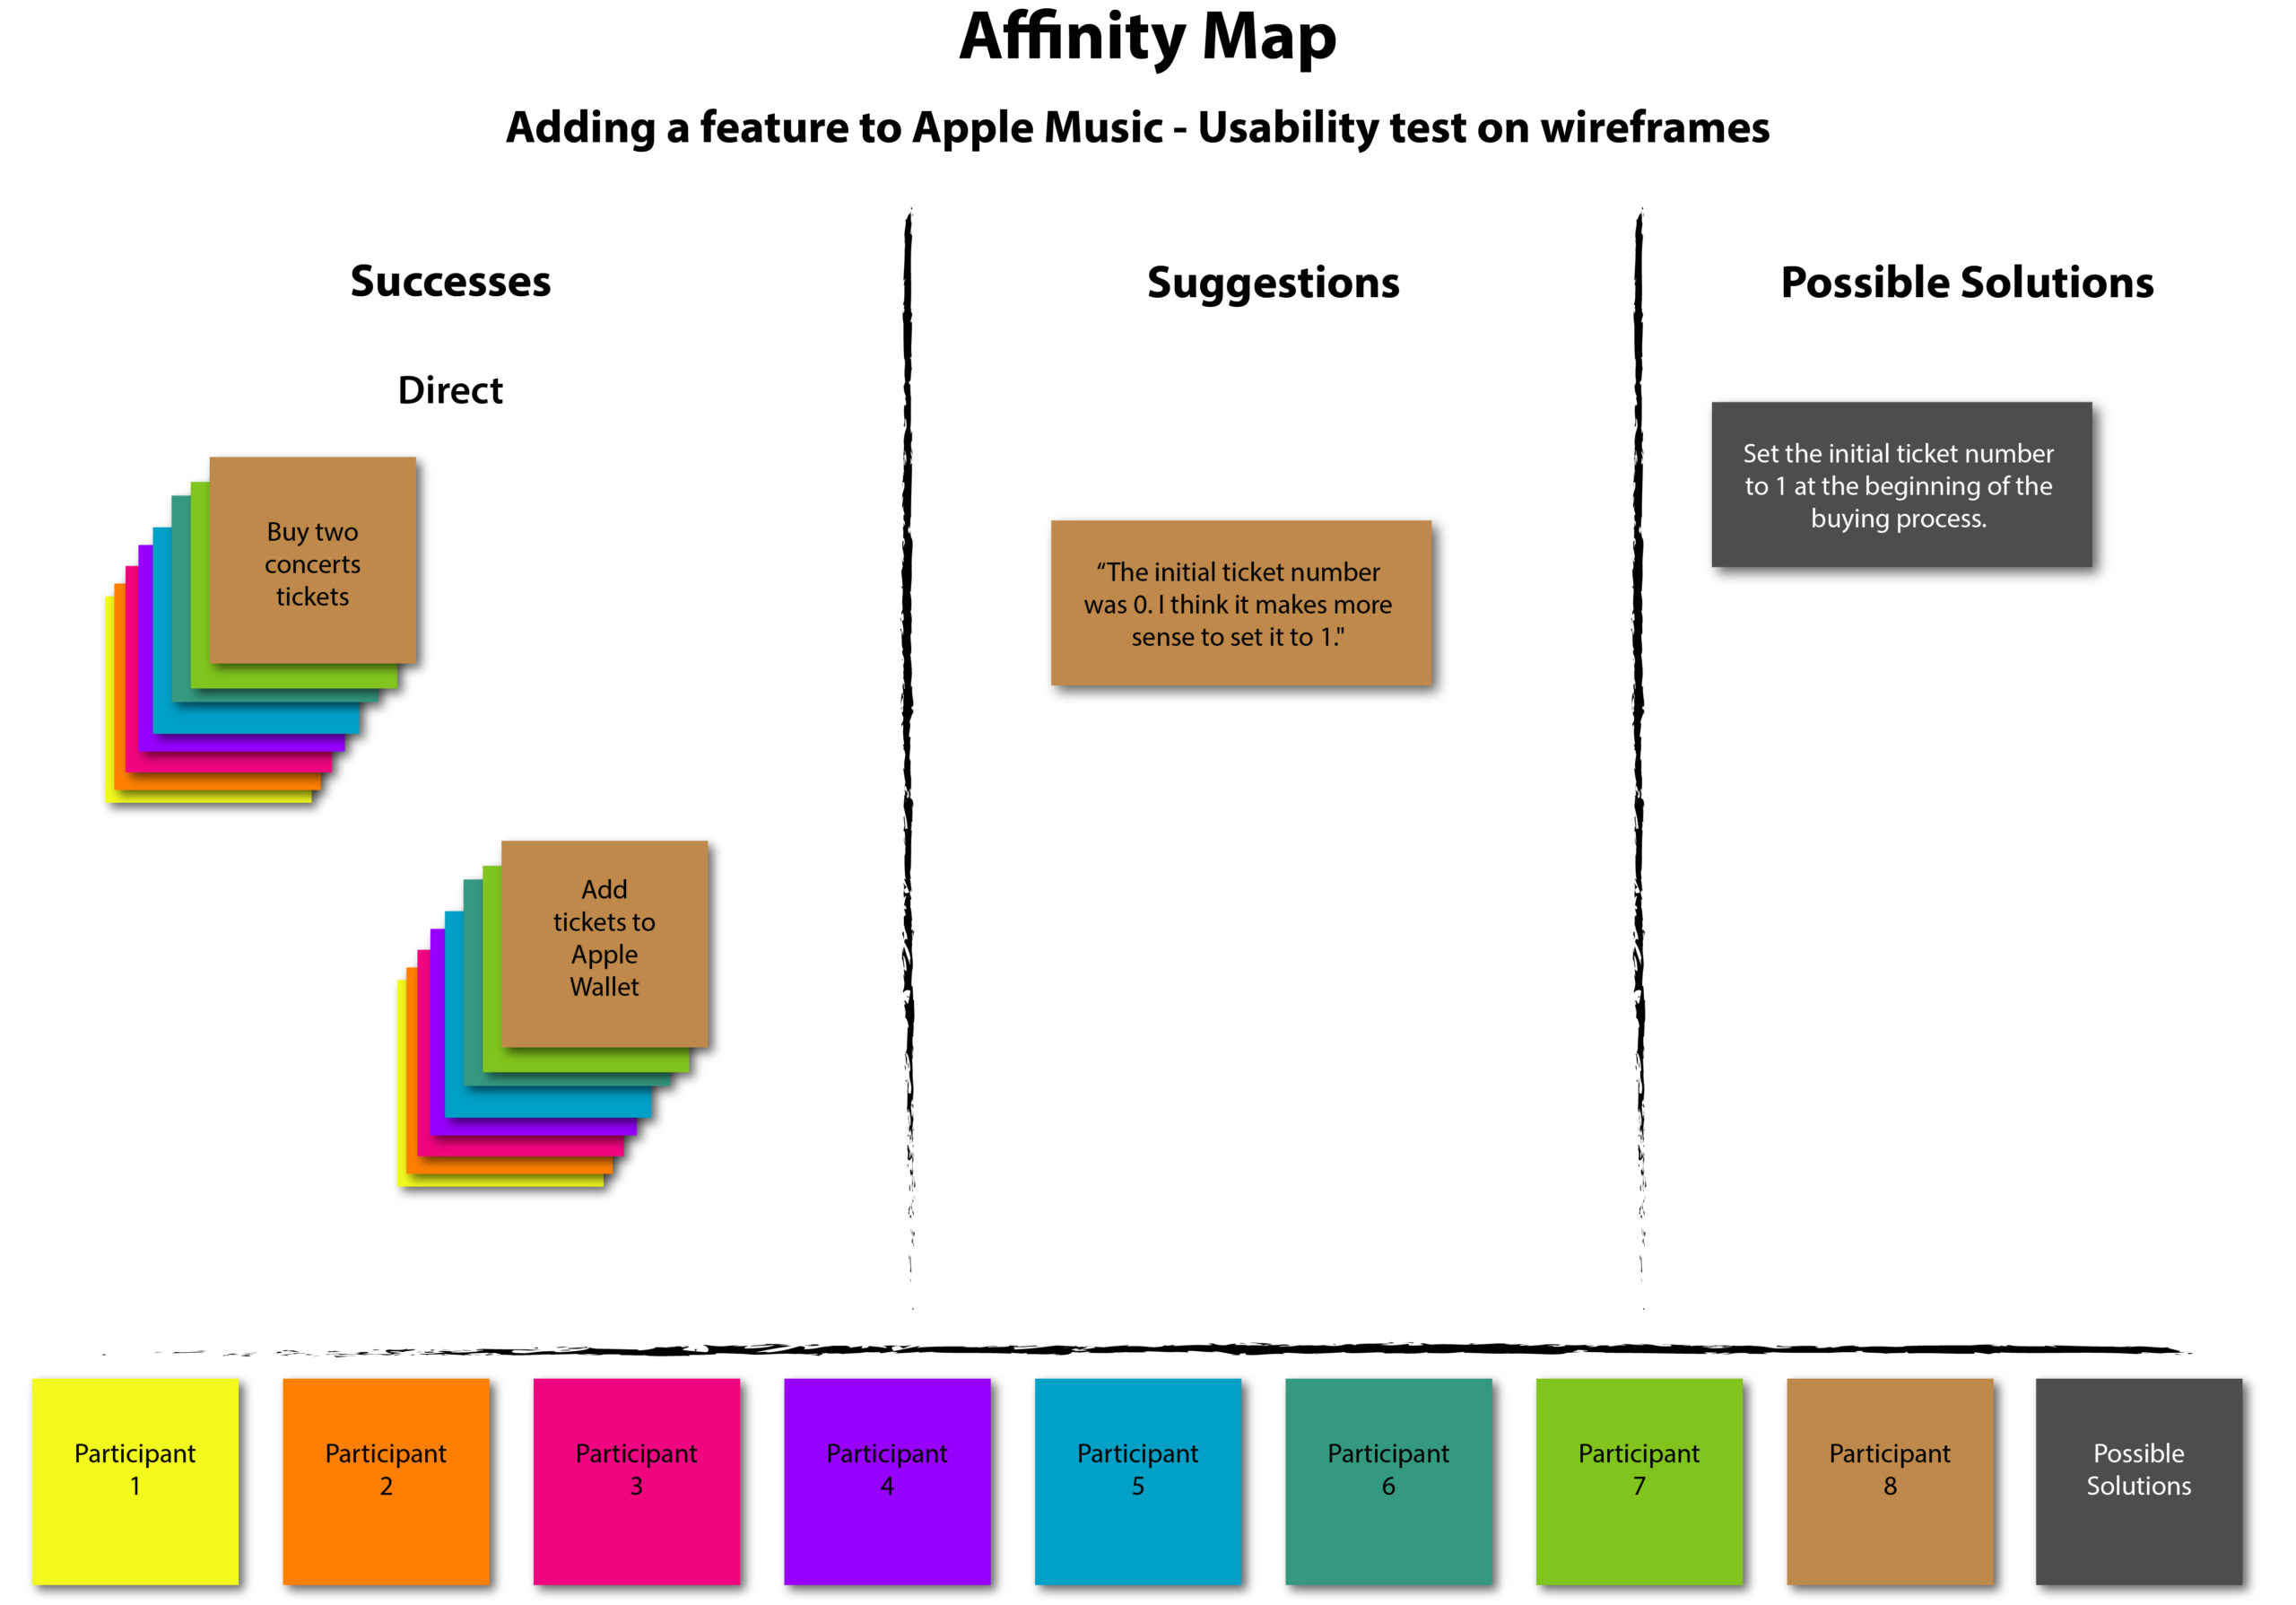 afam_wireframestest-affinity_map_v20200316